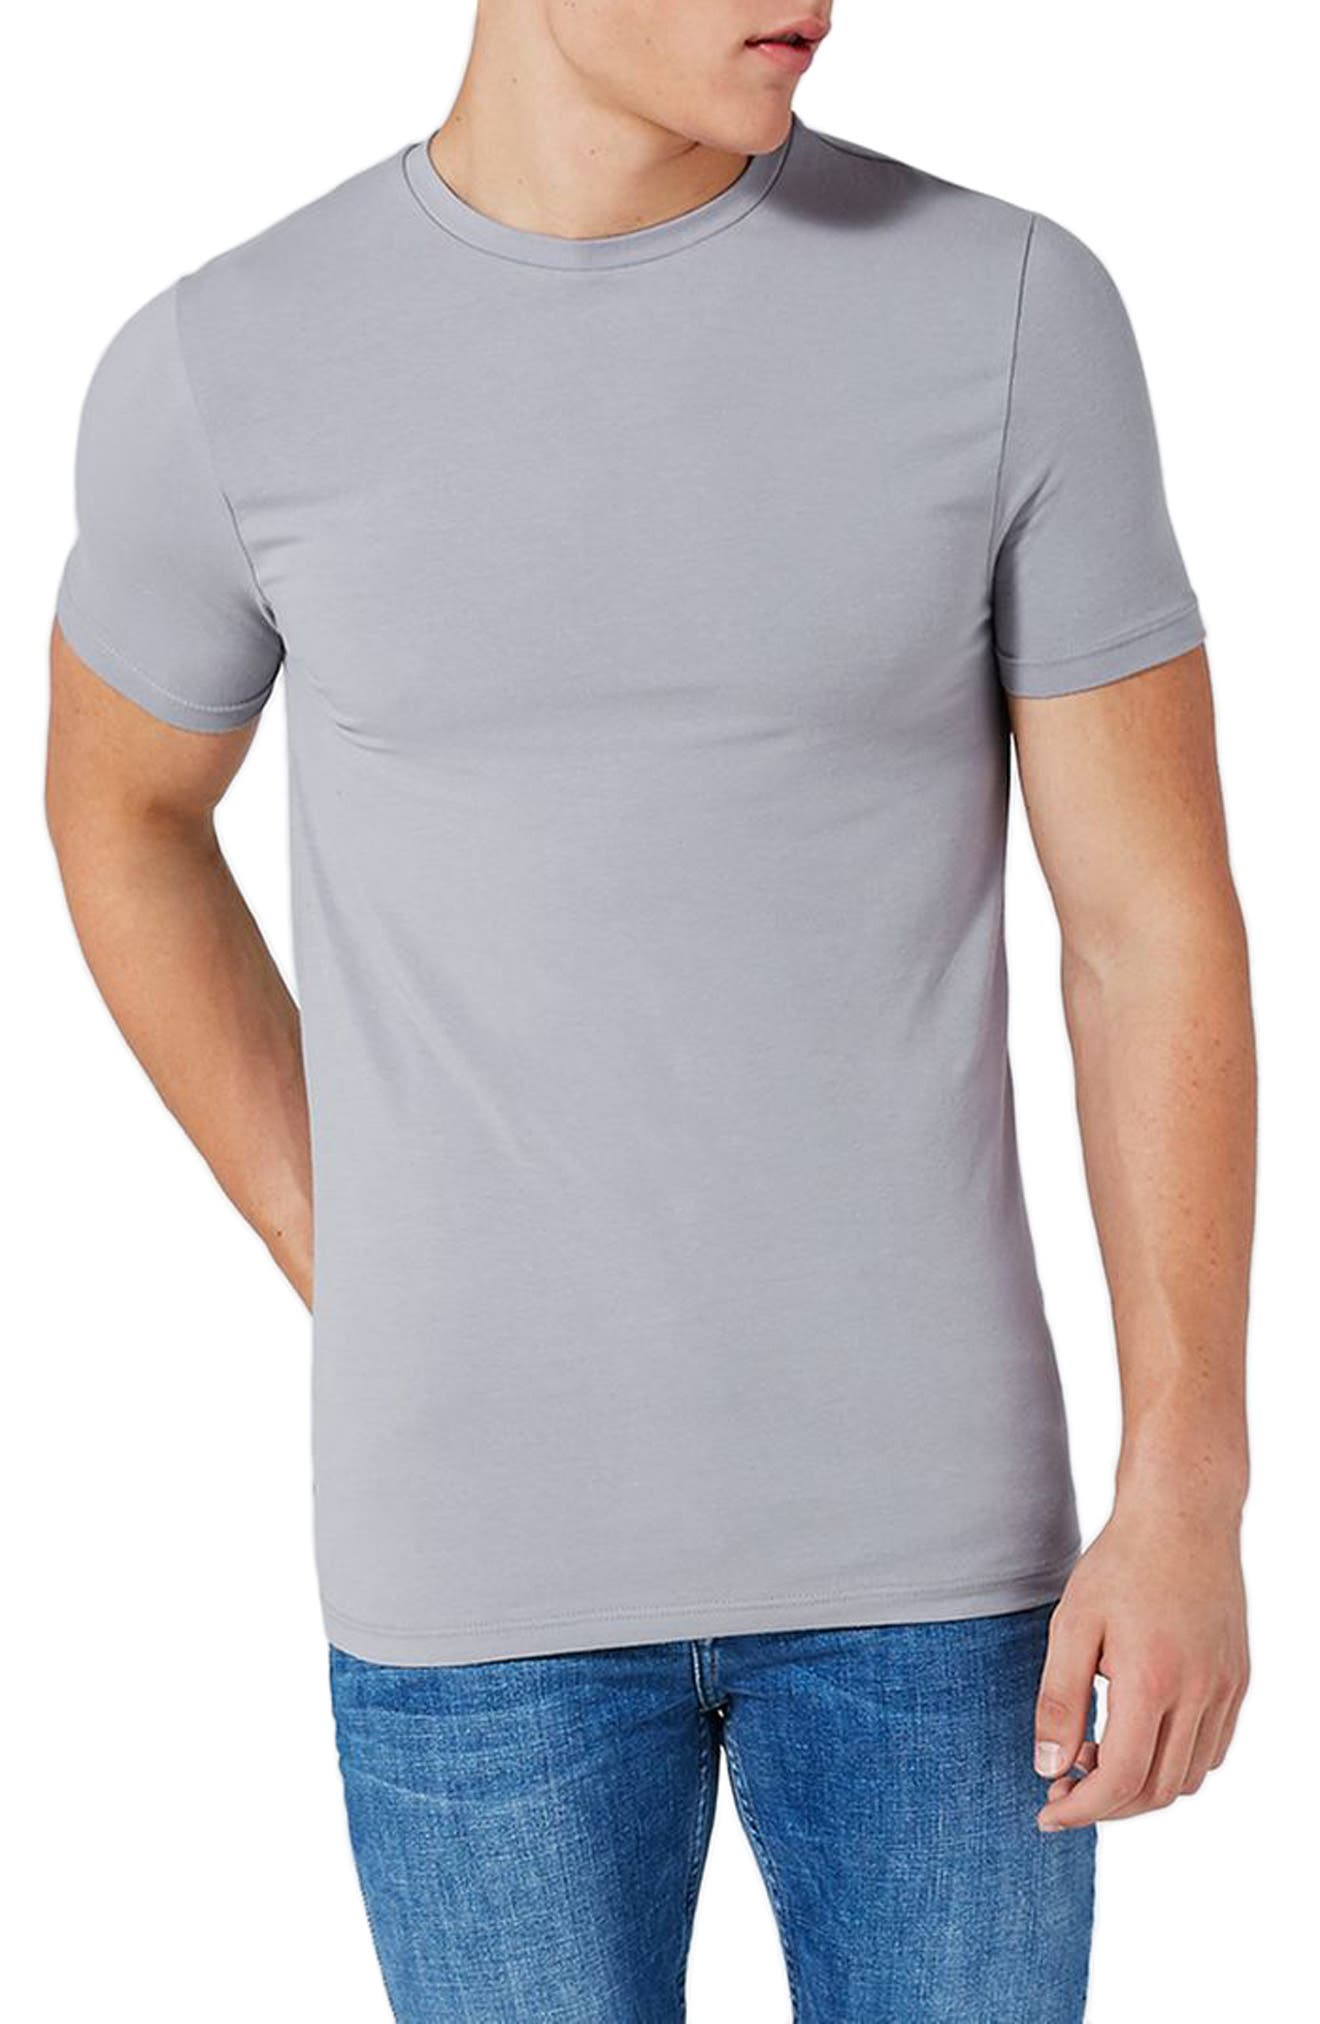 Ultra Muscle Fit T-Shirt,                         Main,                         color, Grey